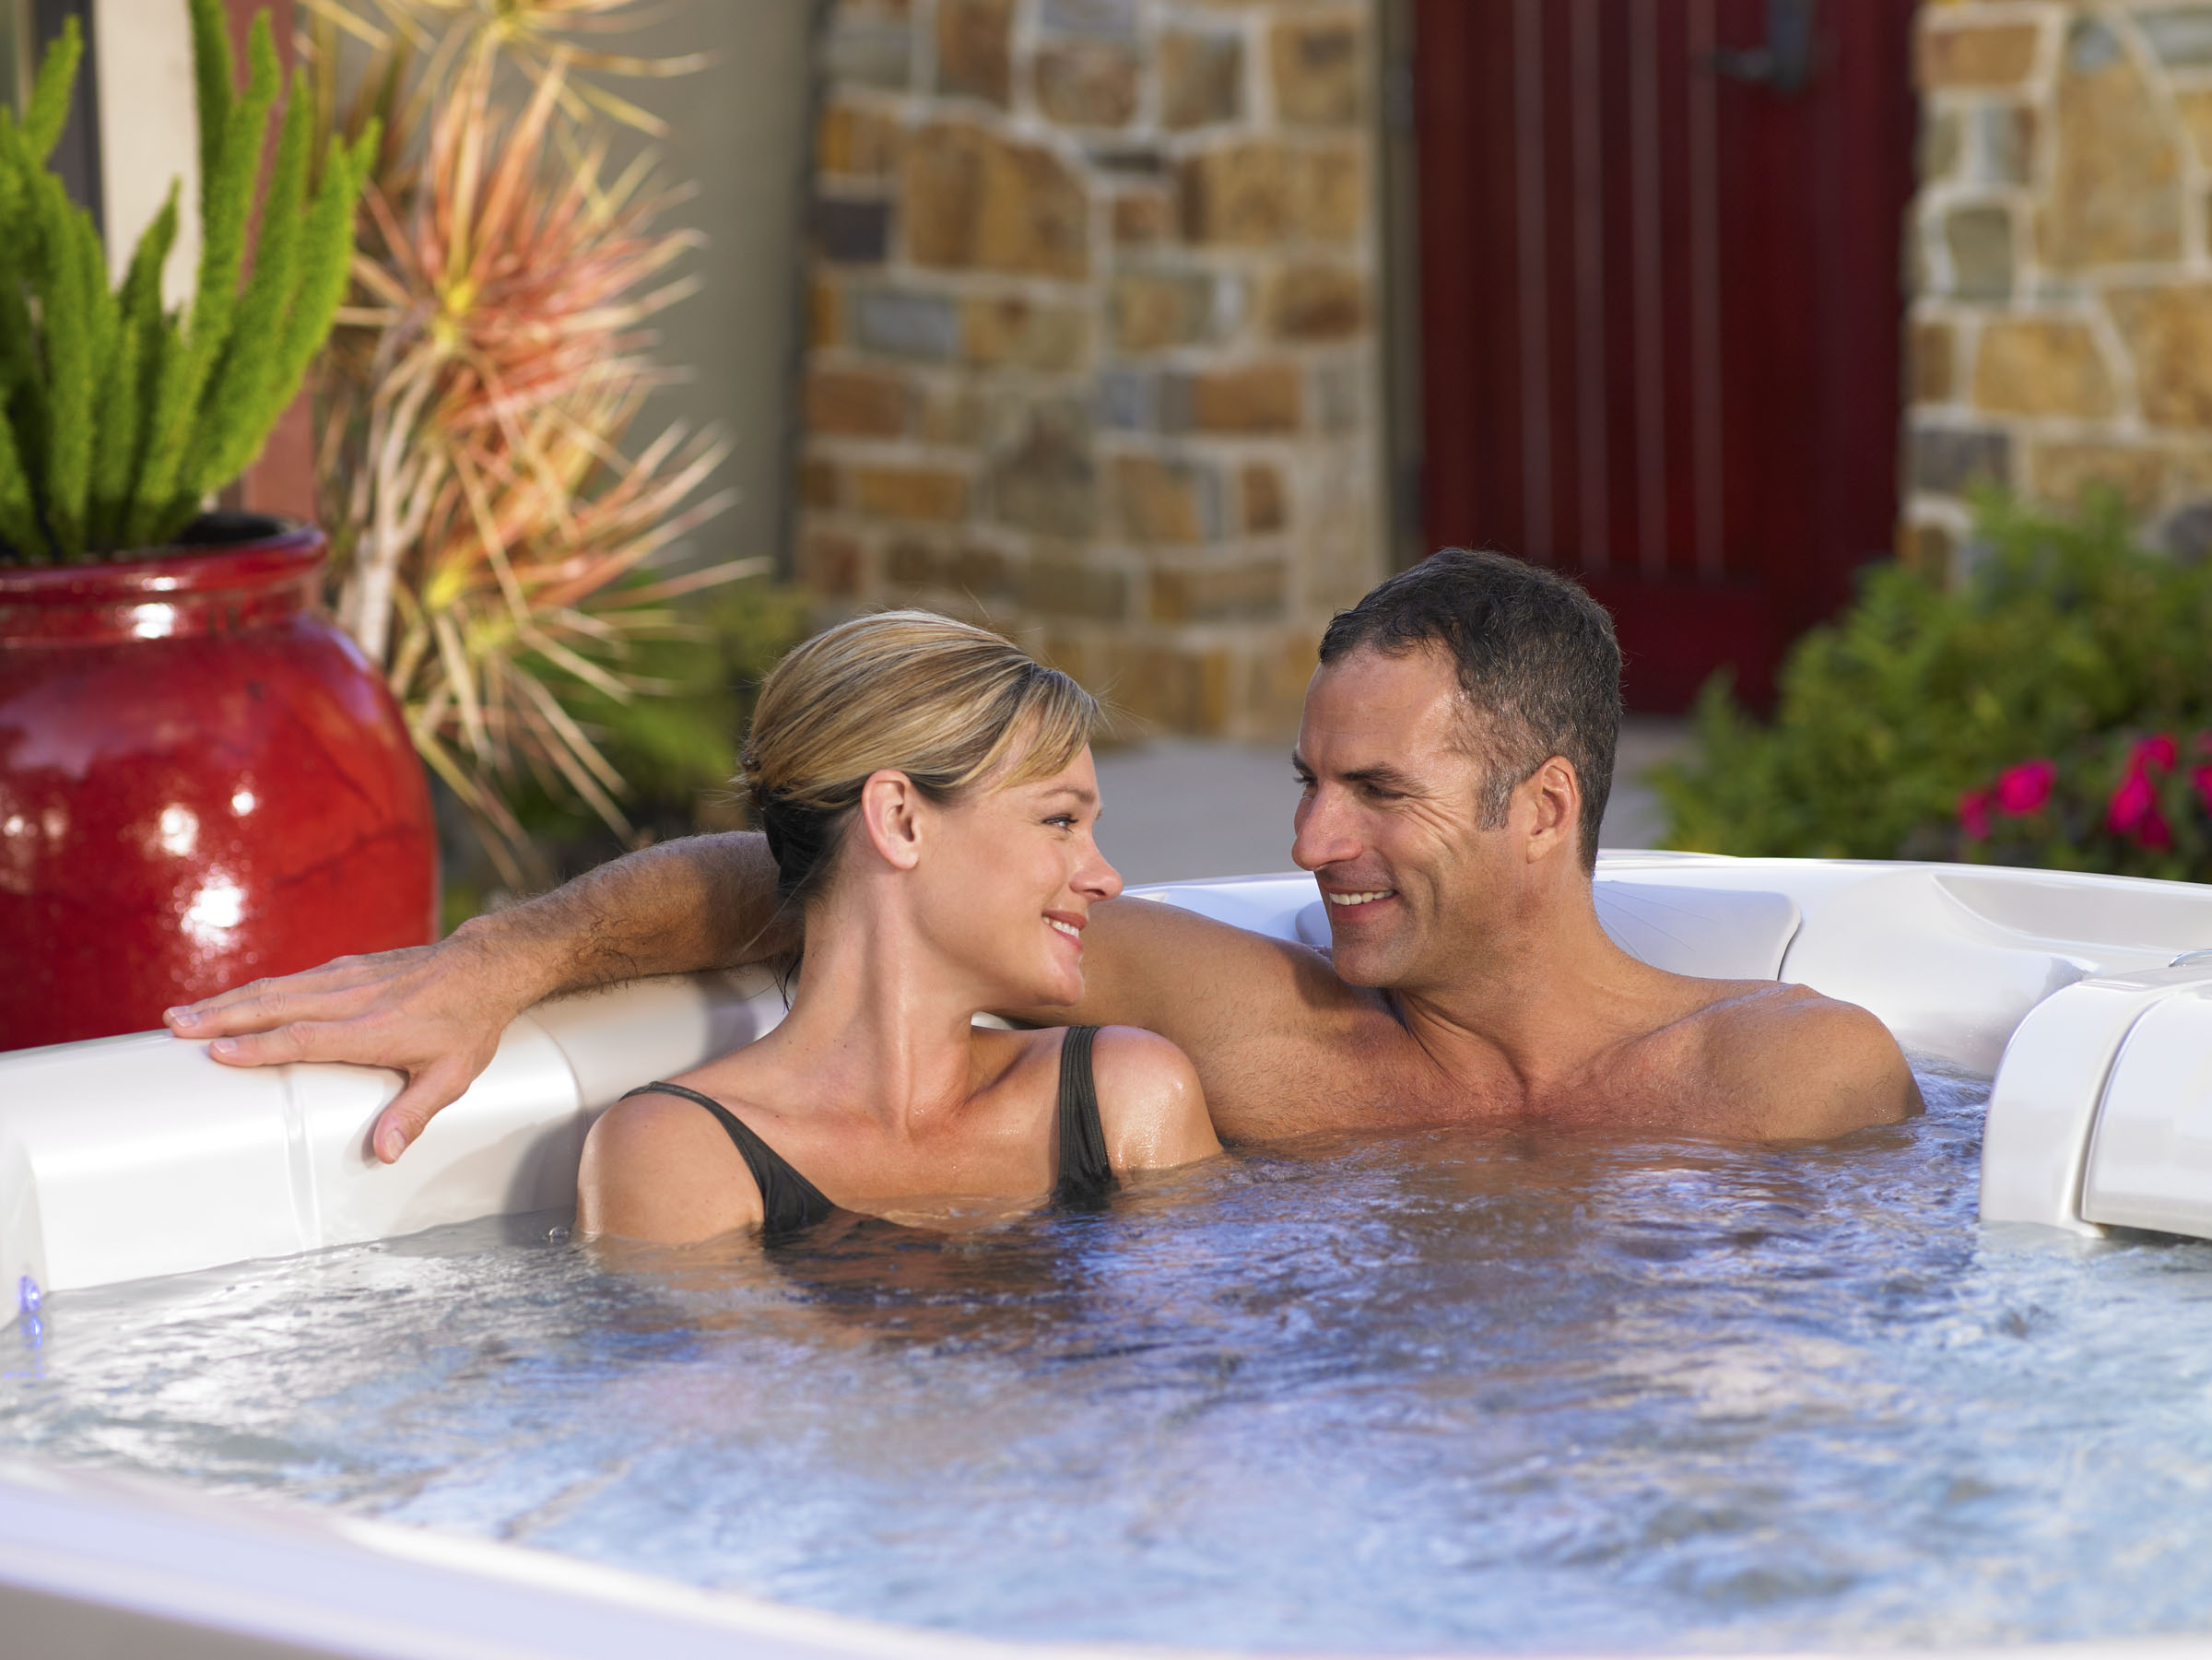 Trust Our Summit County Service Professionals with Your Spa